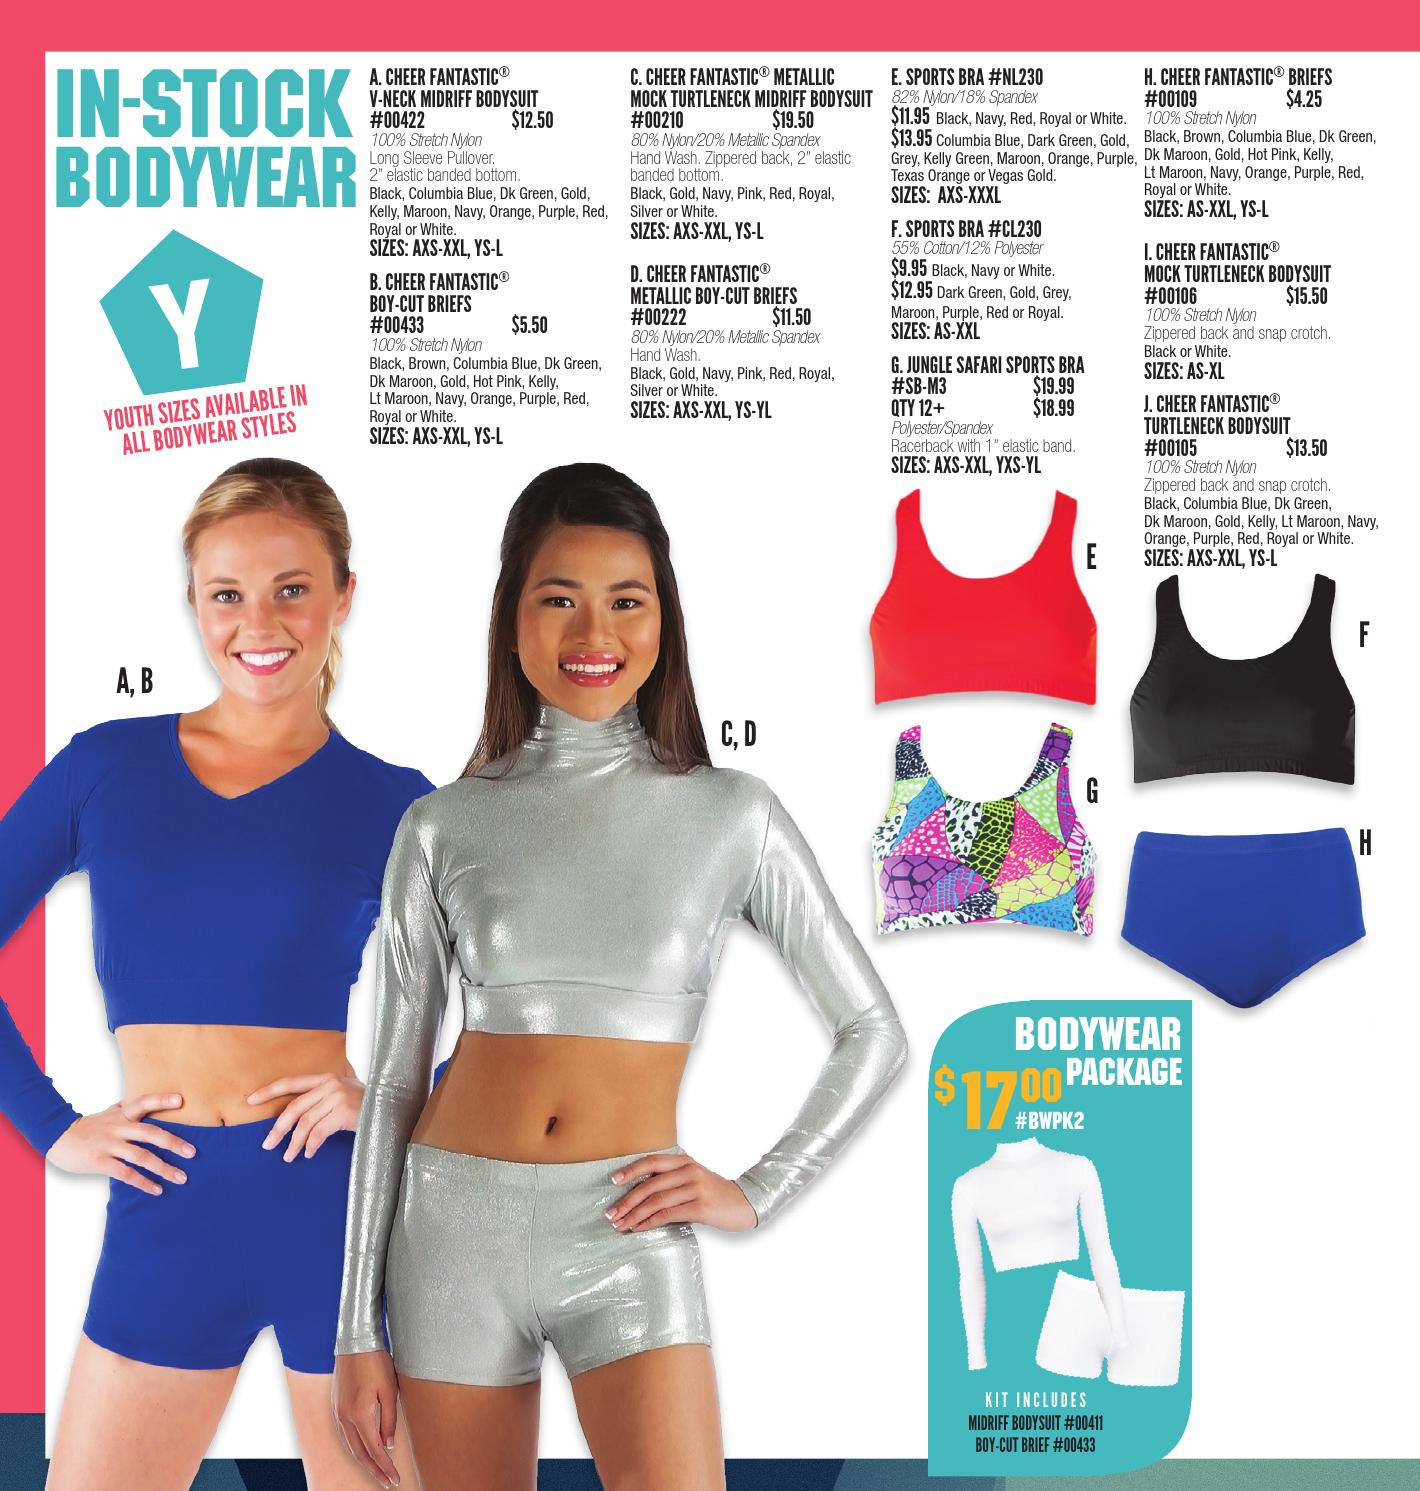 4a51d7d46eb5 Cheer Outfitters 2016 by Cheer Outfitters - issuu